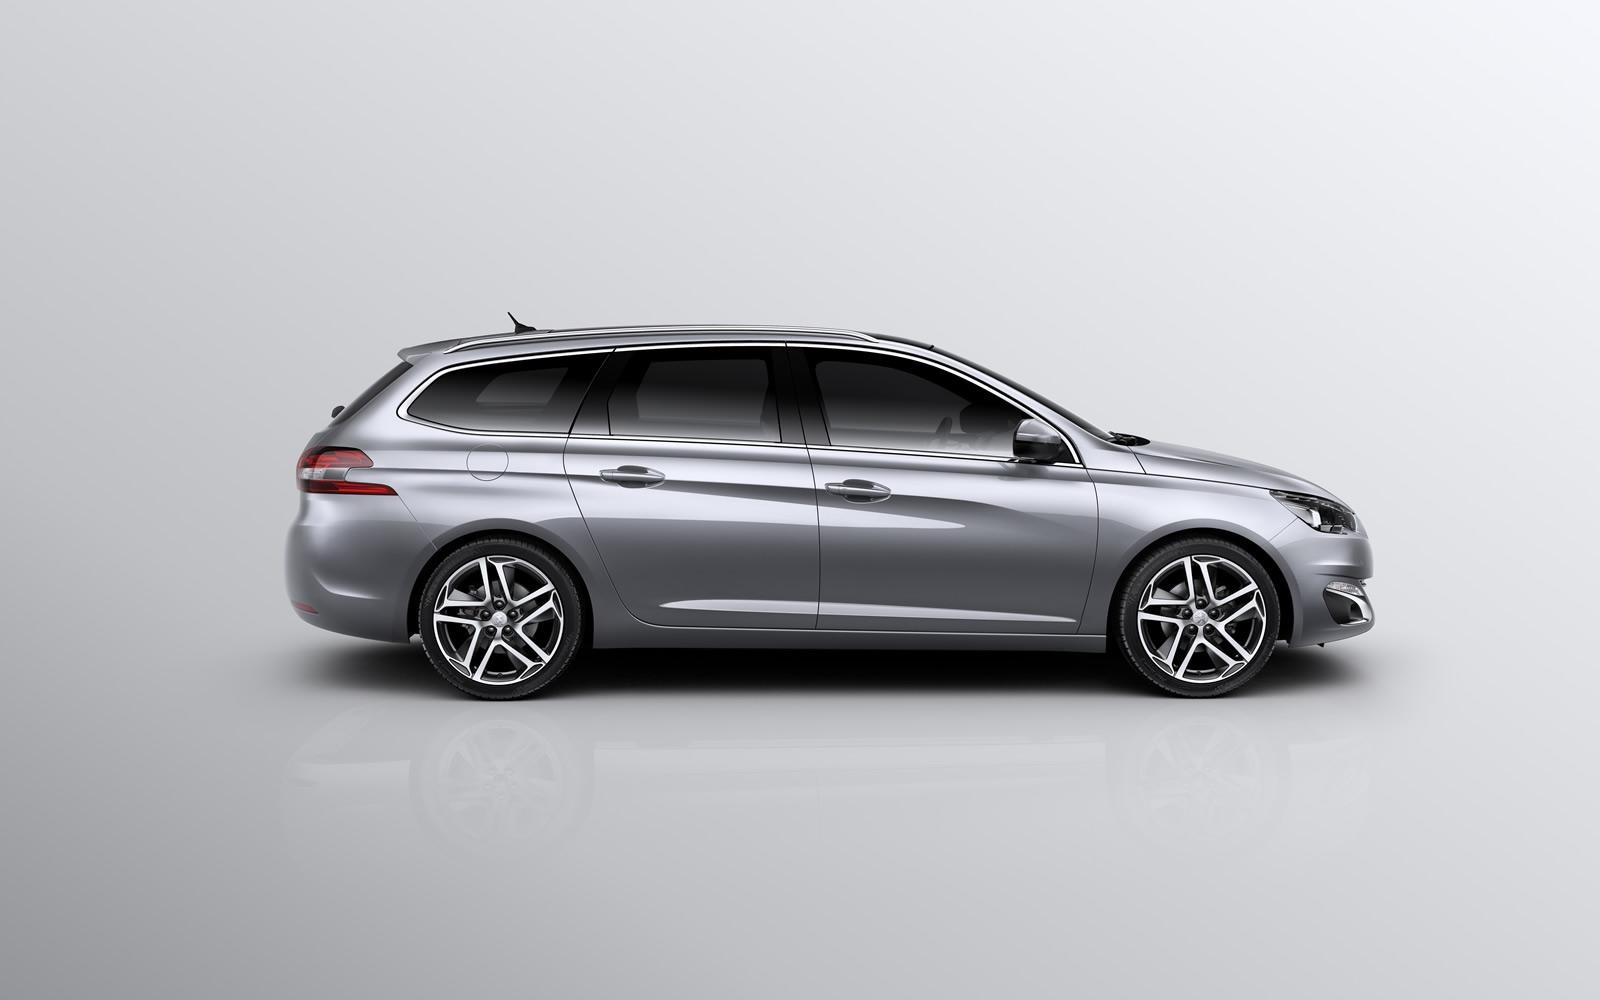 Peugeot 308 Sw Peugeot 308 Sw Revealed With 610 Liters Of Cargo Space